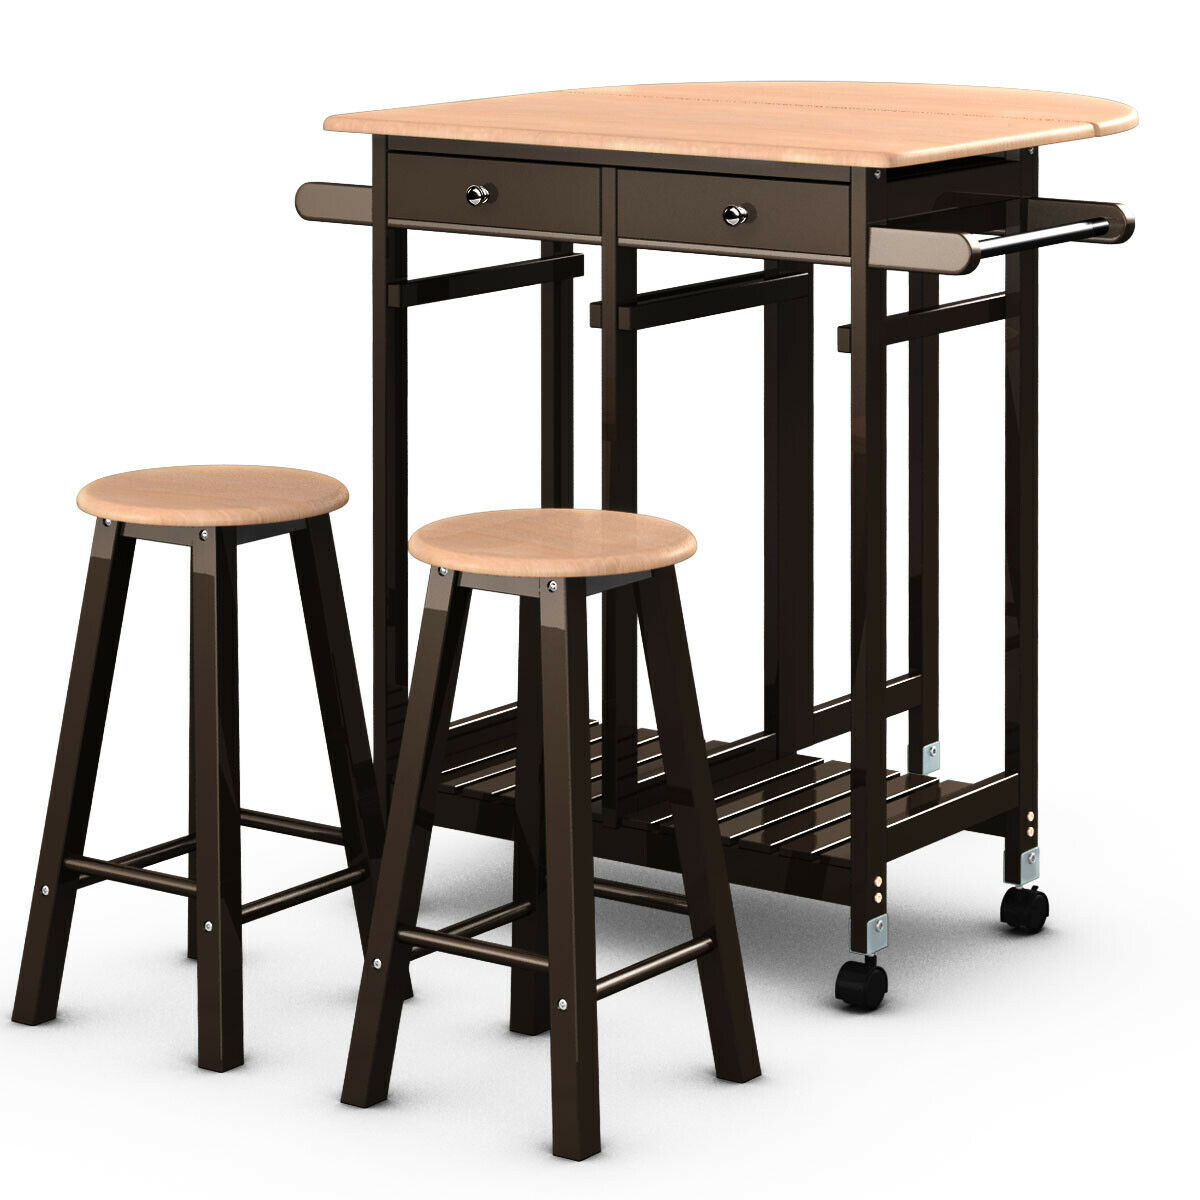 Costway 3PC Wood Kitchen Island Rolling Cart Set Dinning Drop Leaf Table w/ 2 Stools